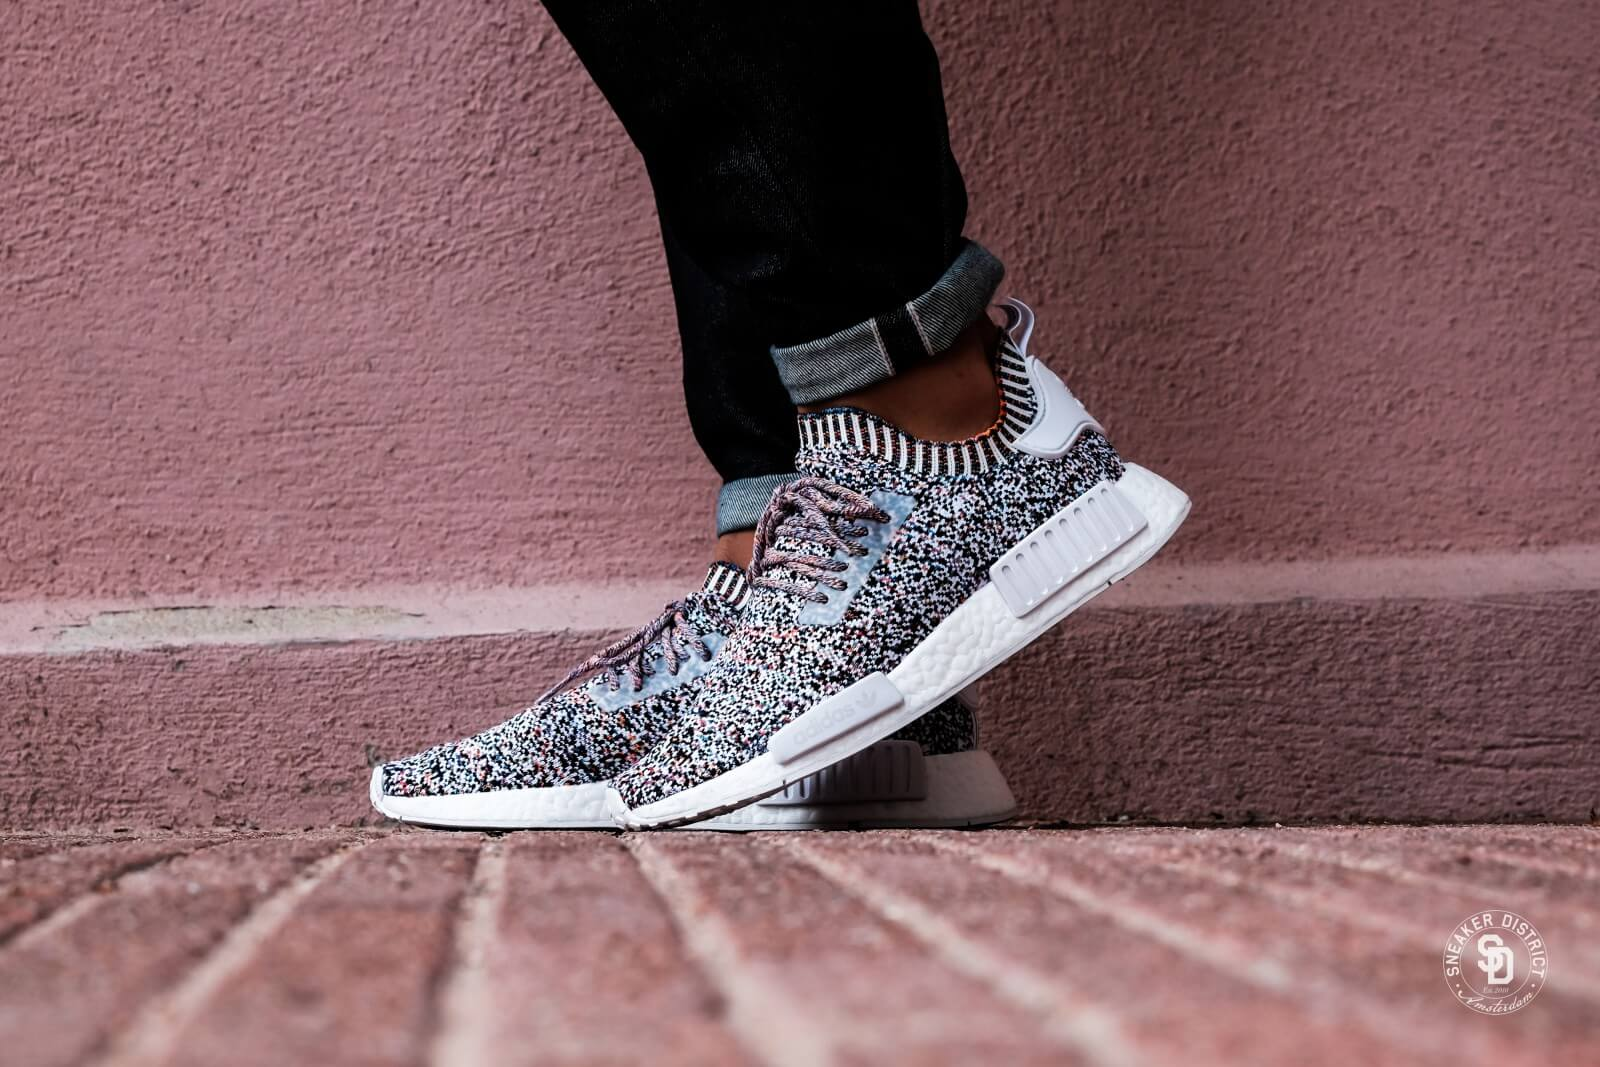 adidas nmd r1 primeknit color static bw1126